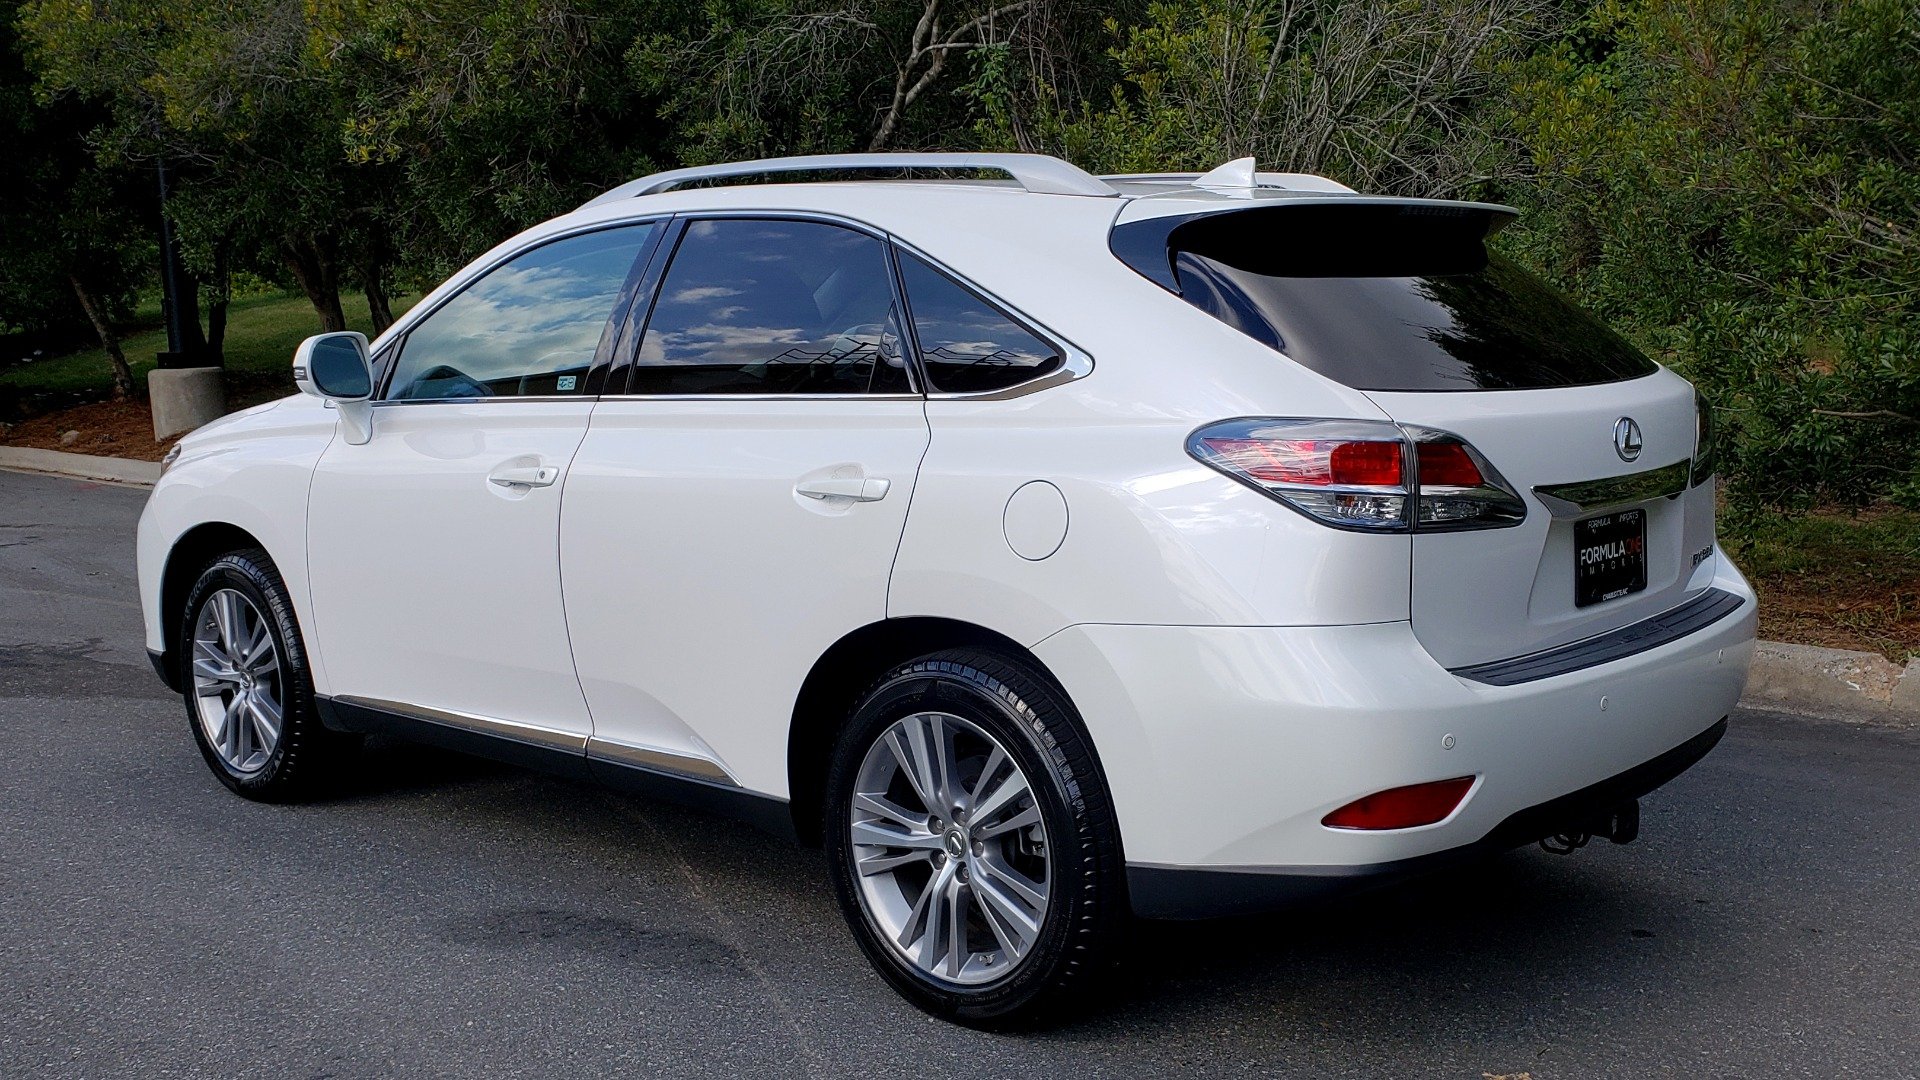 Used 2015 Lexus RX 350 PREMIUM PKG / COMFORT PKG / NAV / SUNROOF / BSM / TOWING for sale Sold at Formula Imports in Charlotte NC 28227 4